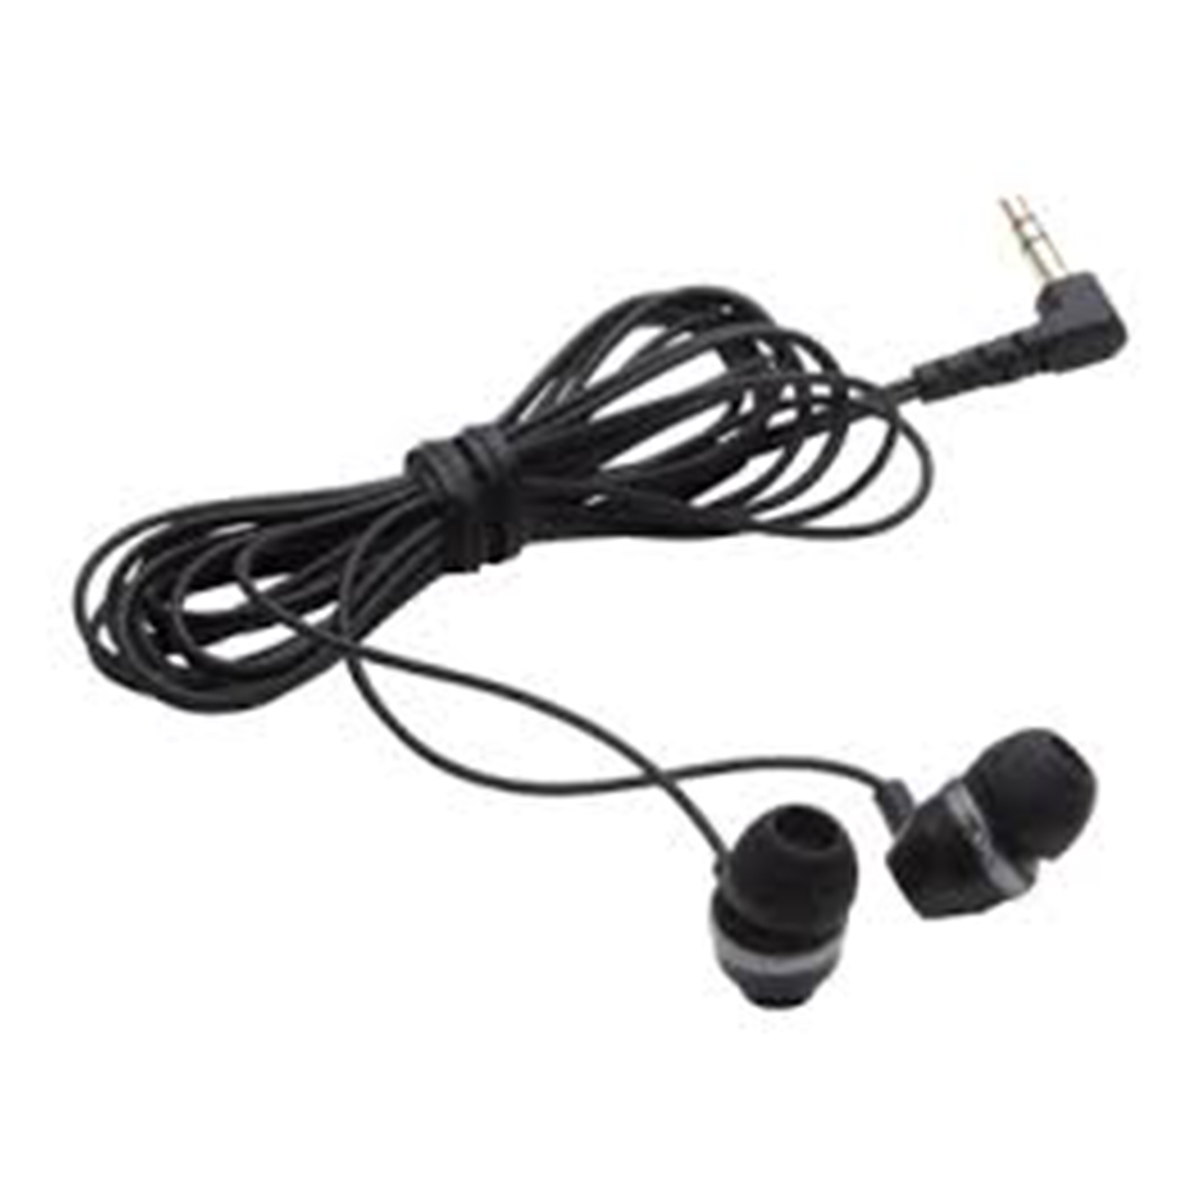 Olympus E38 stereo canal earphone